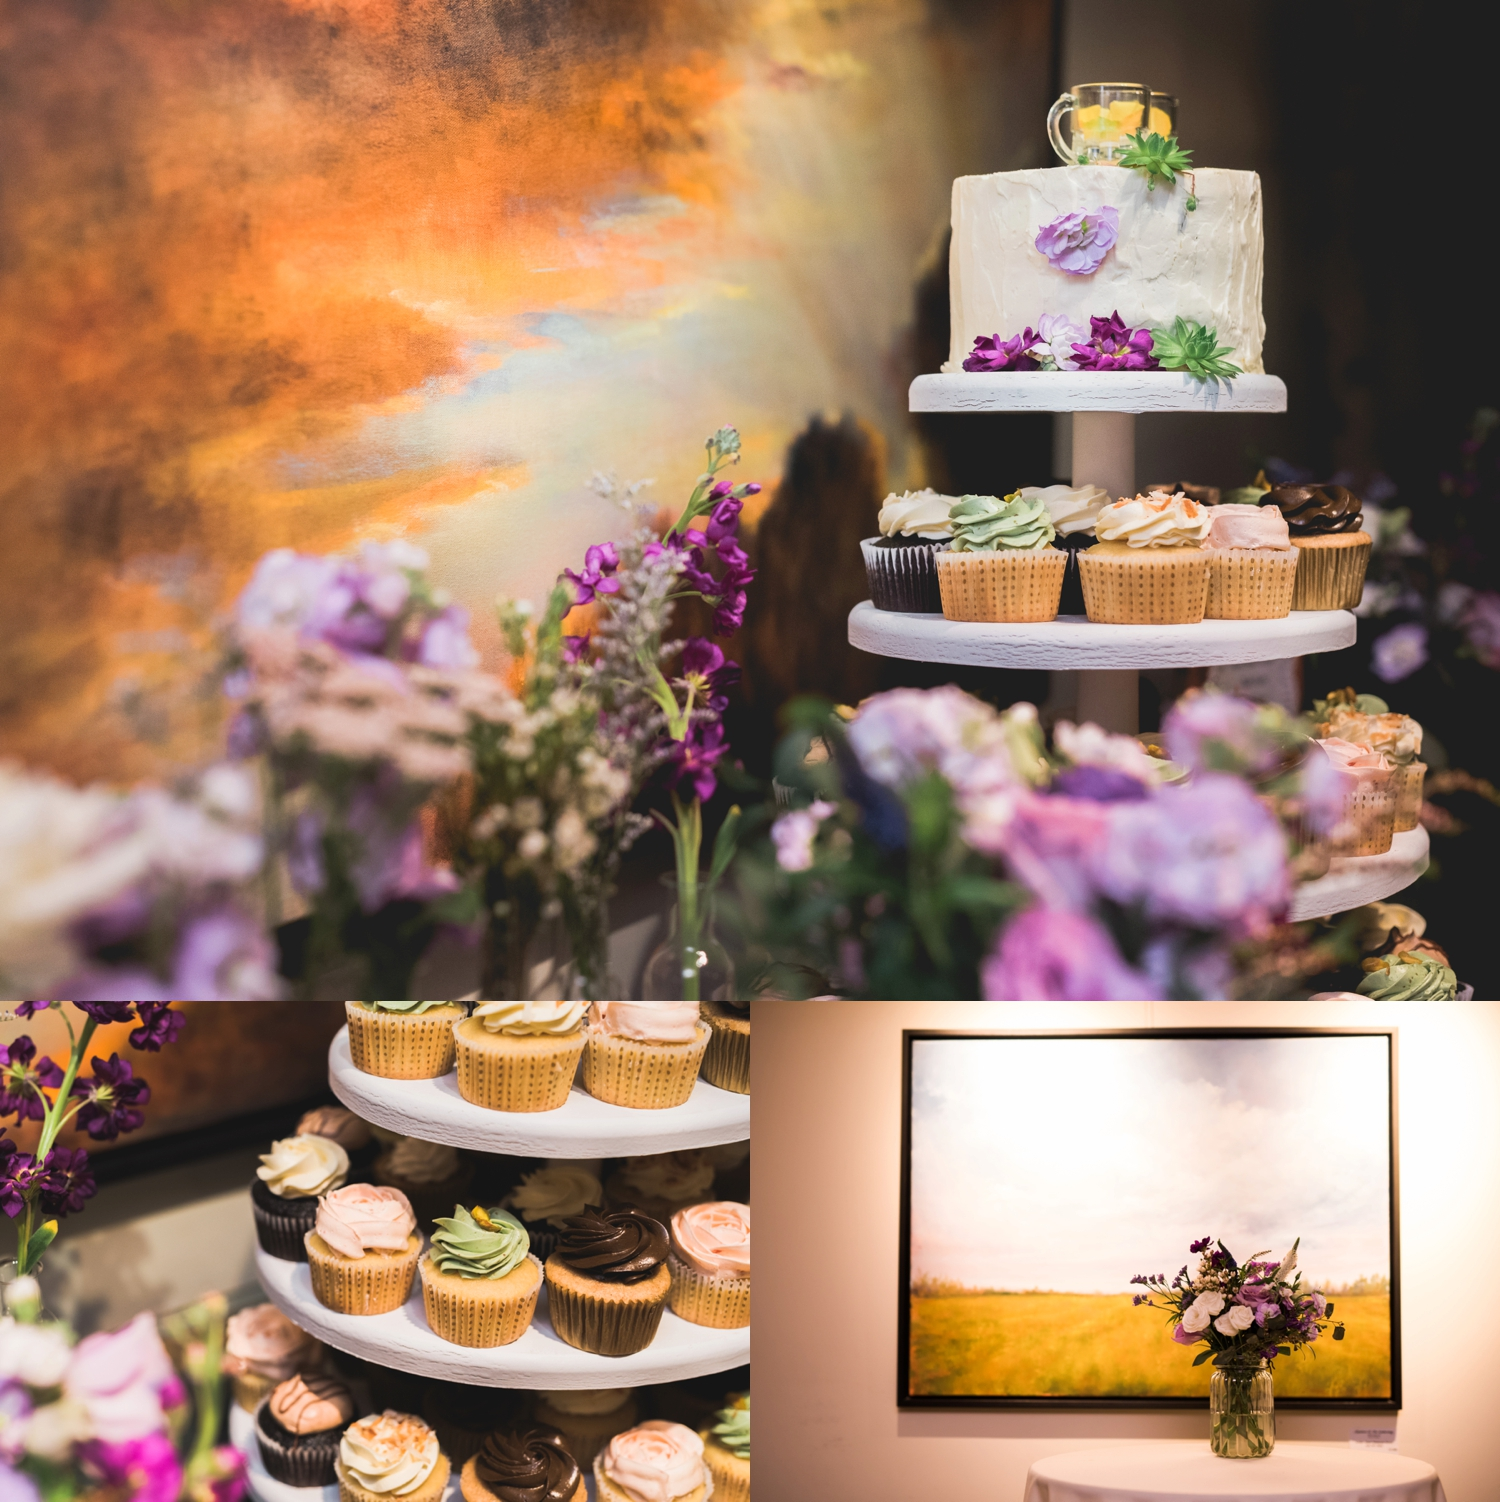 Cupcake and painting at Alton Mill wedding